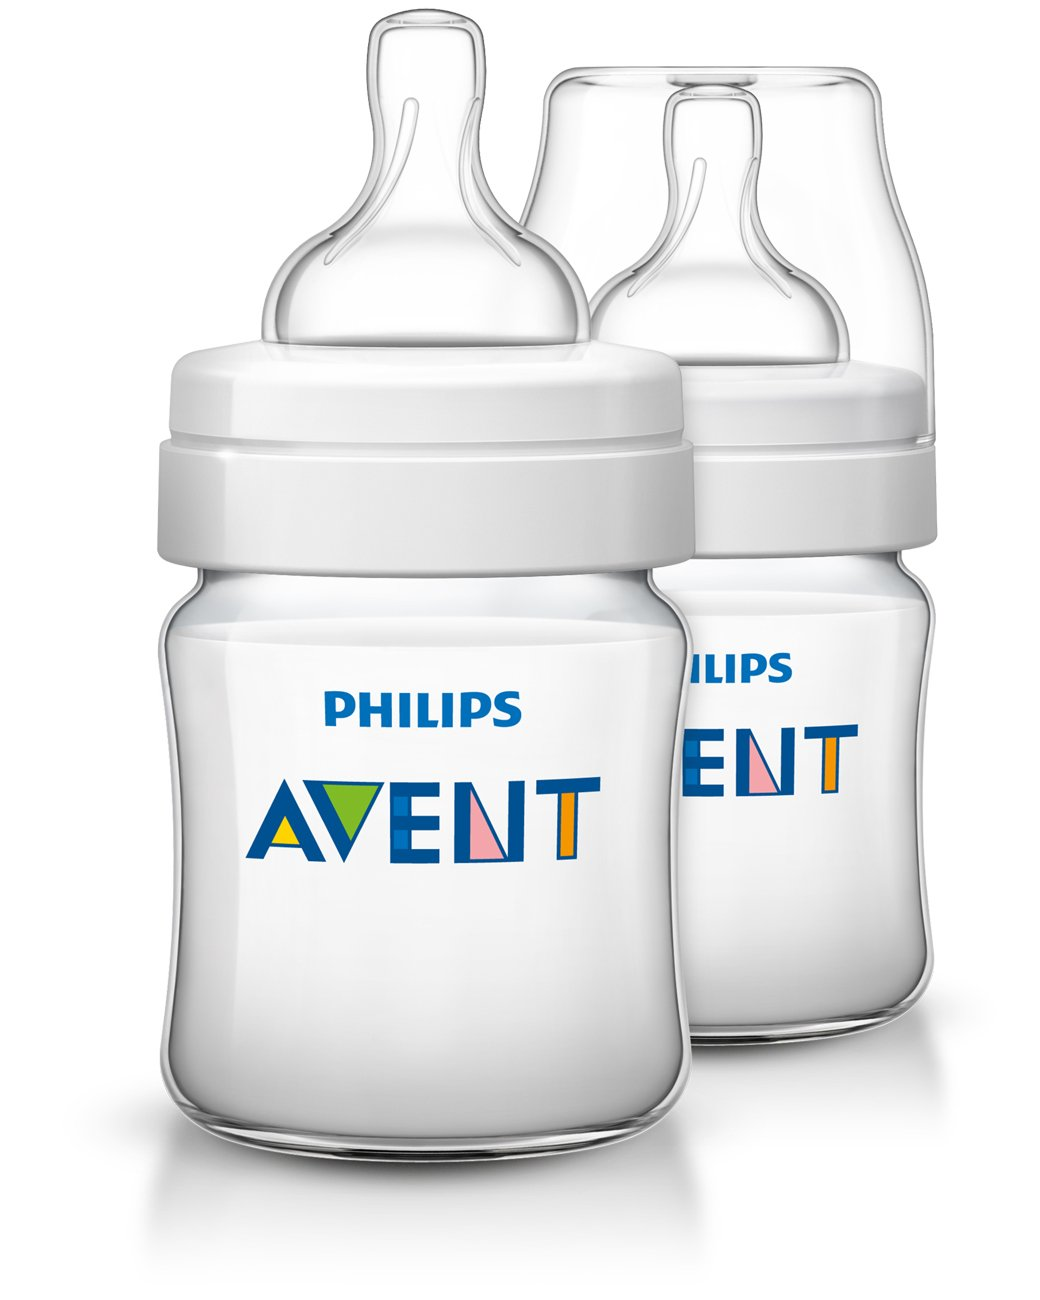 Philips Avent Classic Plus Baby Bottles, 4 Ounce (2 Pack)